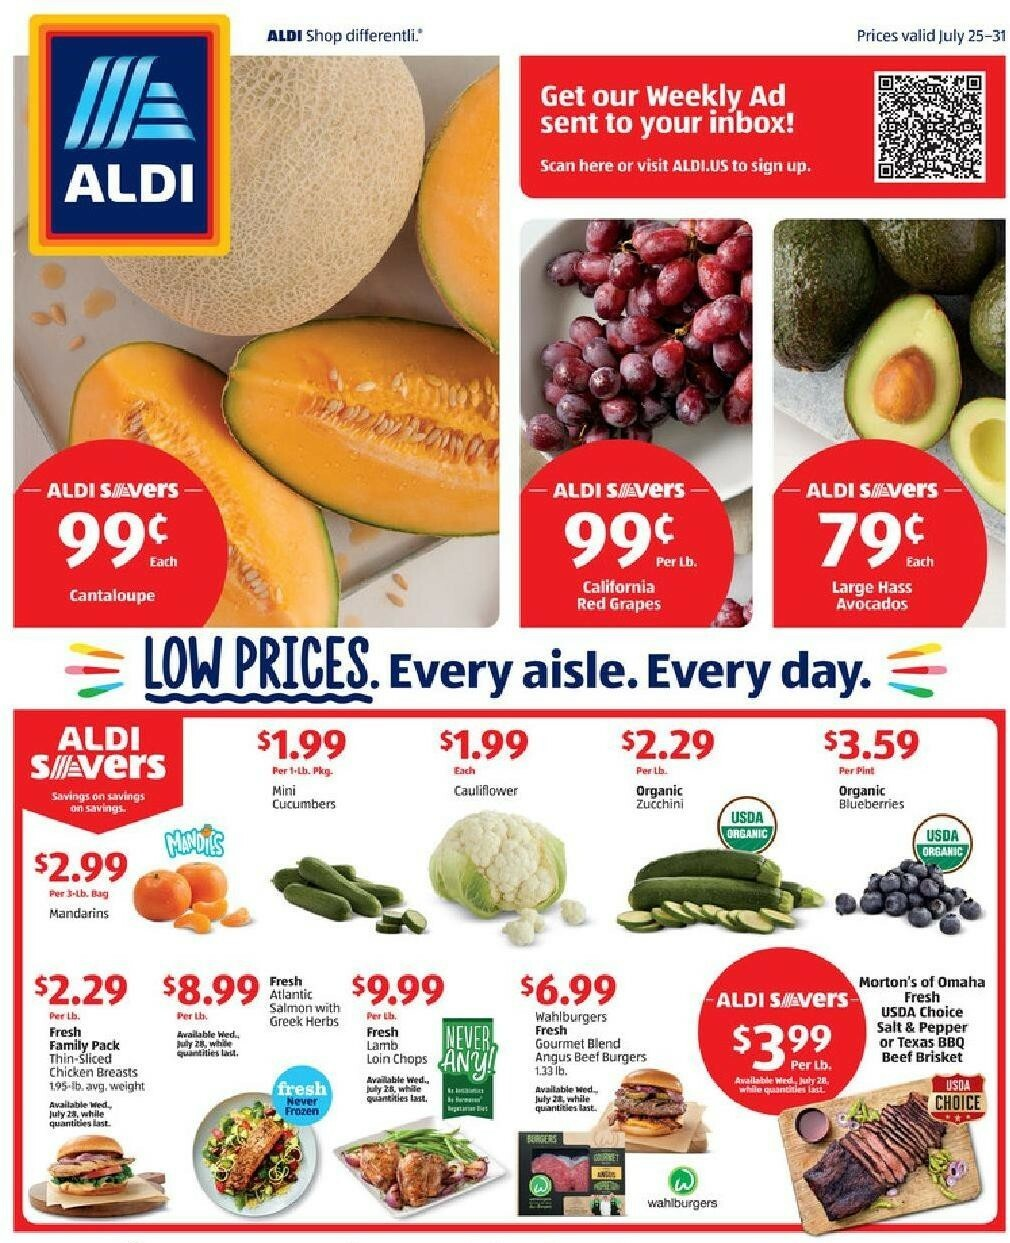 ALDI Weekly Ad from July 25